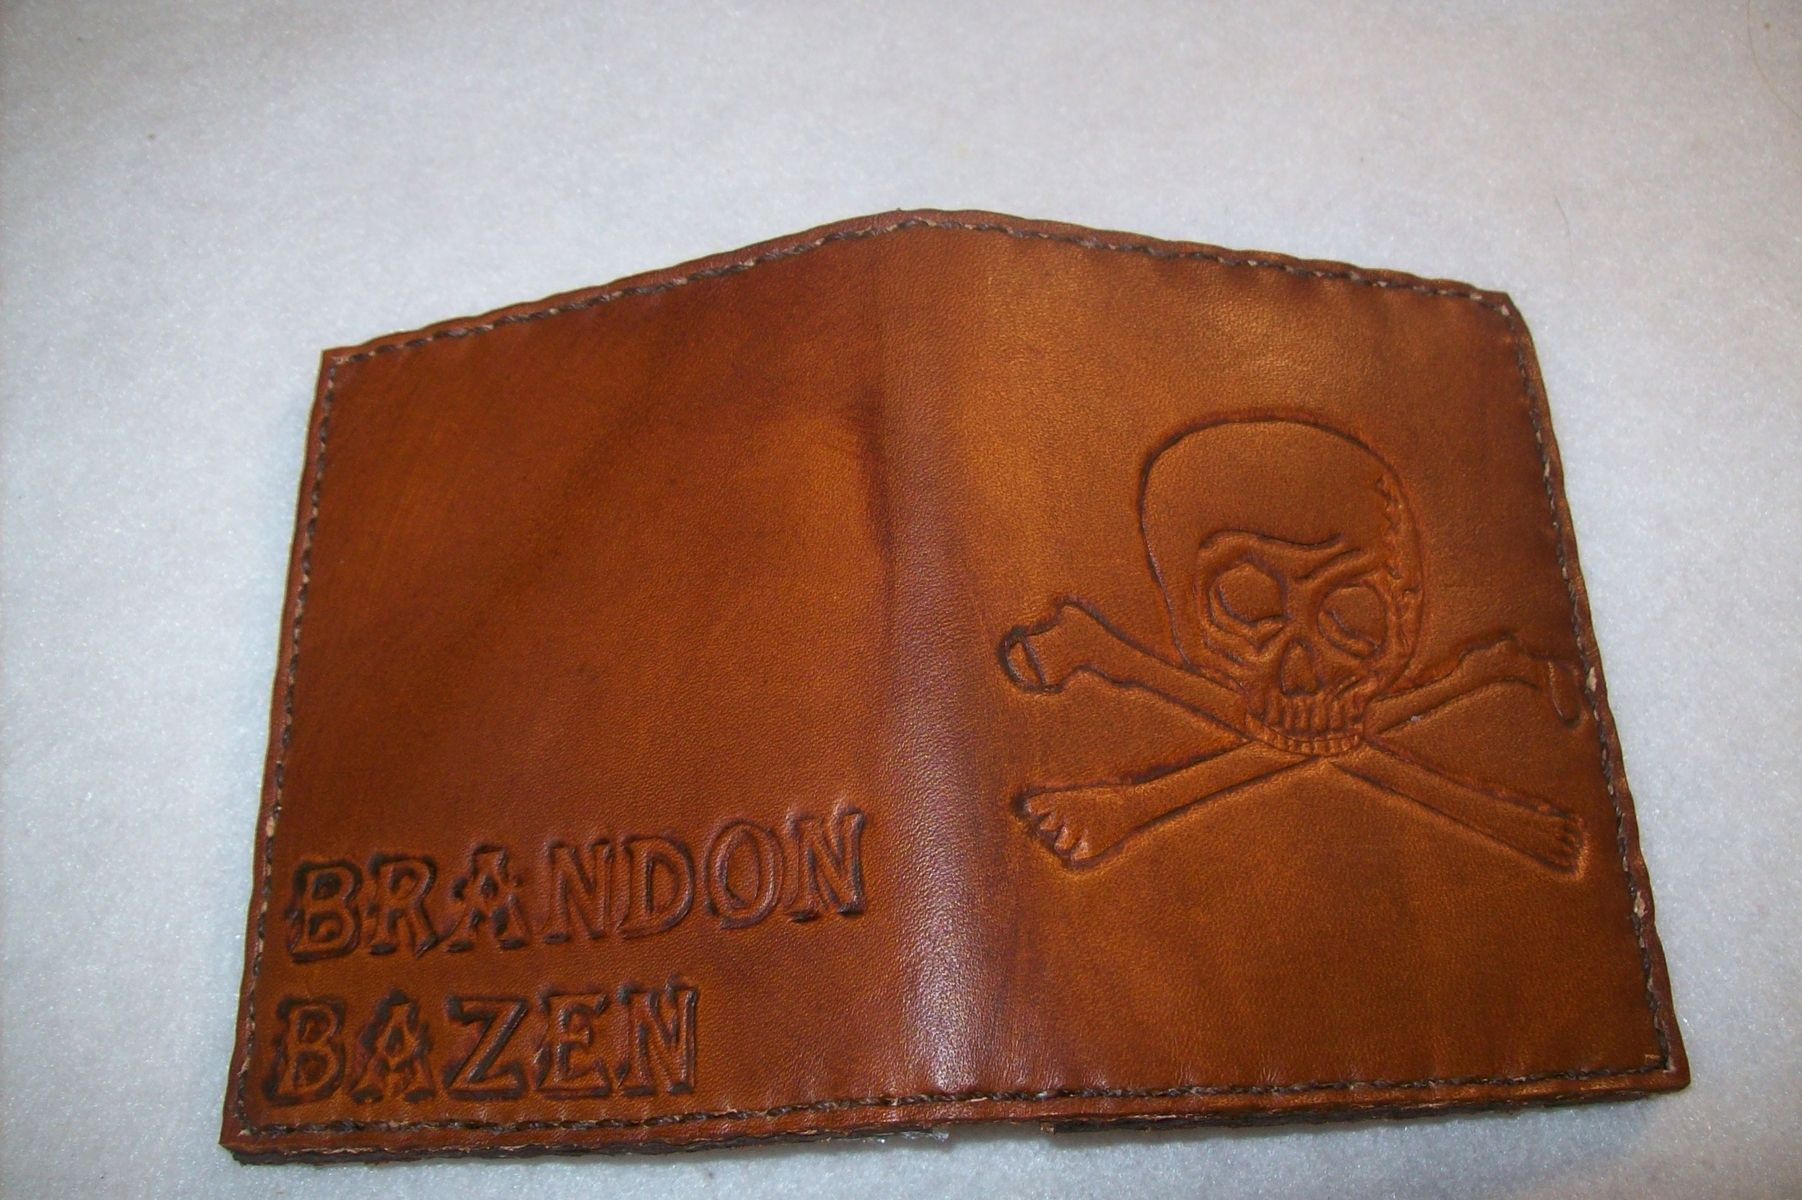 Personalized Wallets | Monogrammed Leather Wallets | CustomMade.com